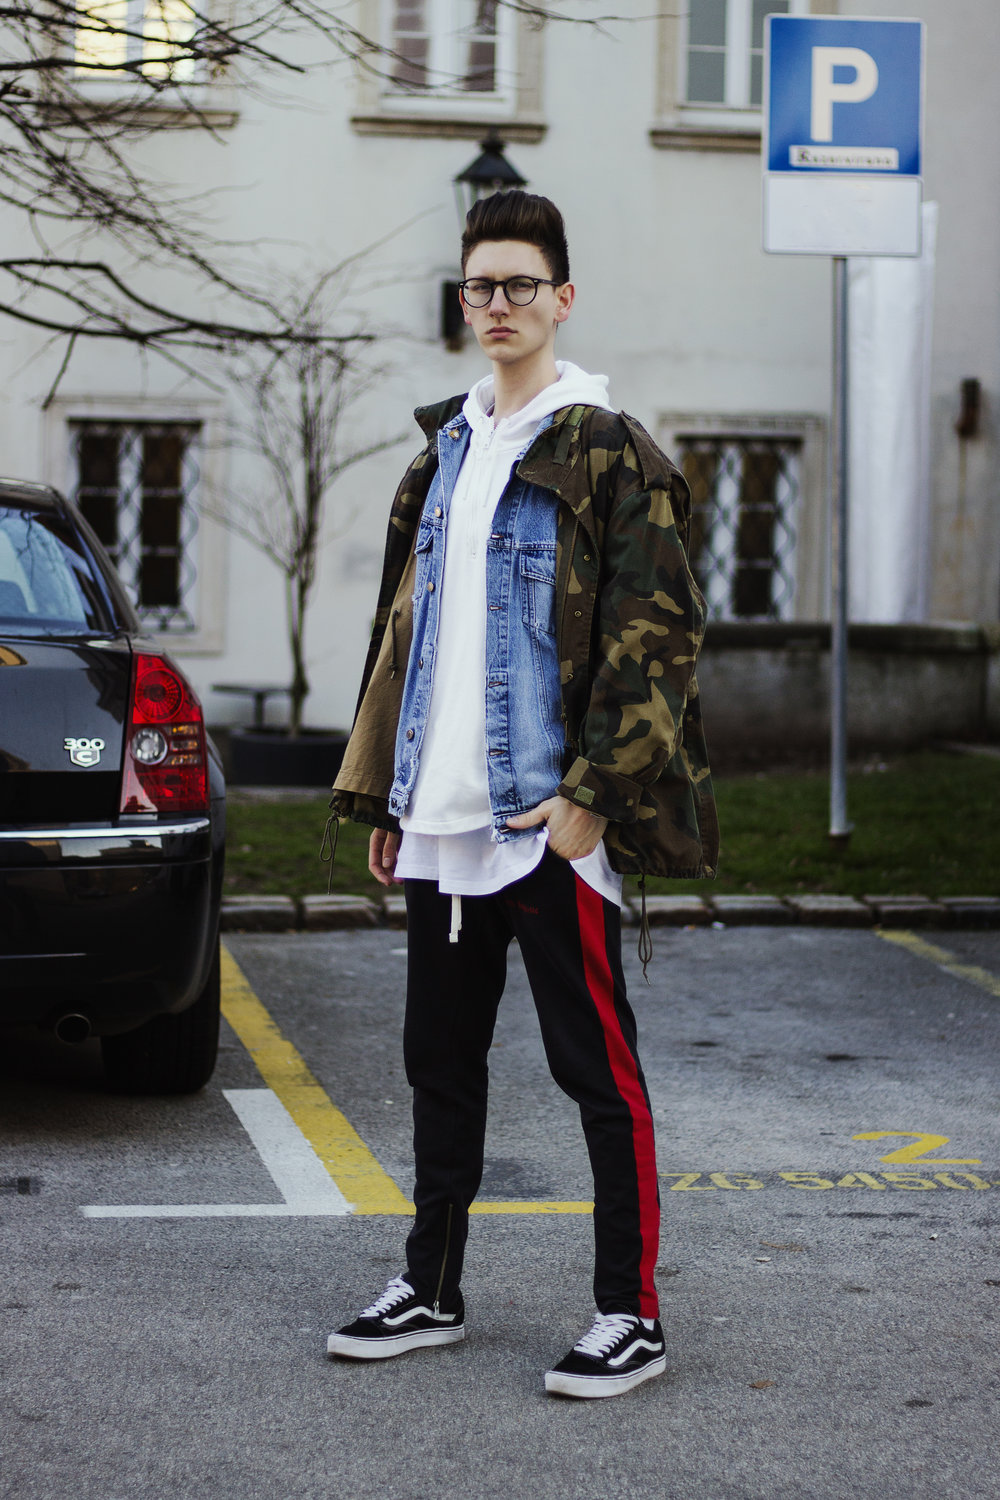 luka-lajic-expensive-reality-hm-mens-fashion-croatia-blogger  (3).jpg